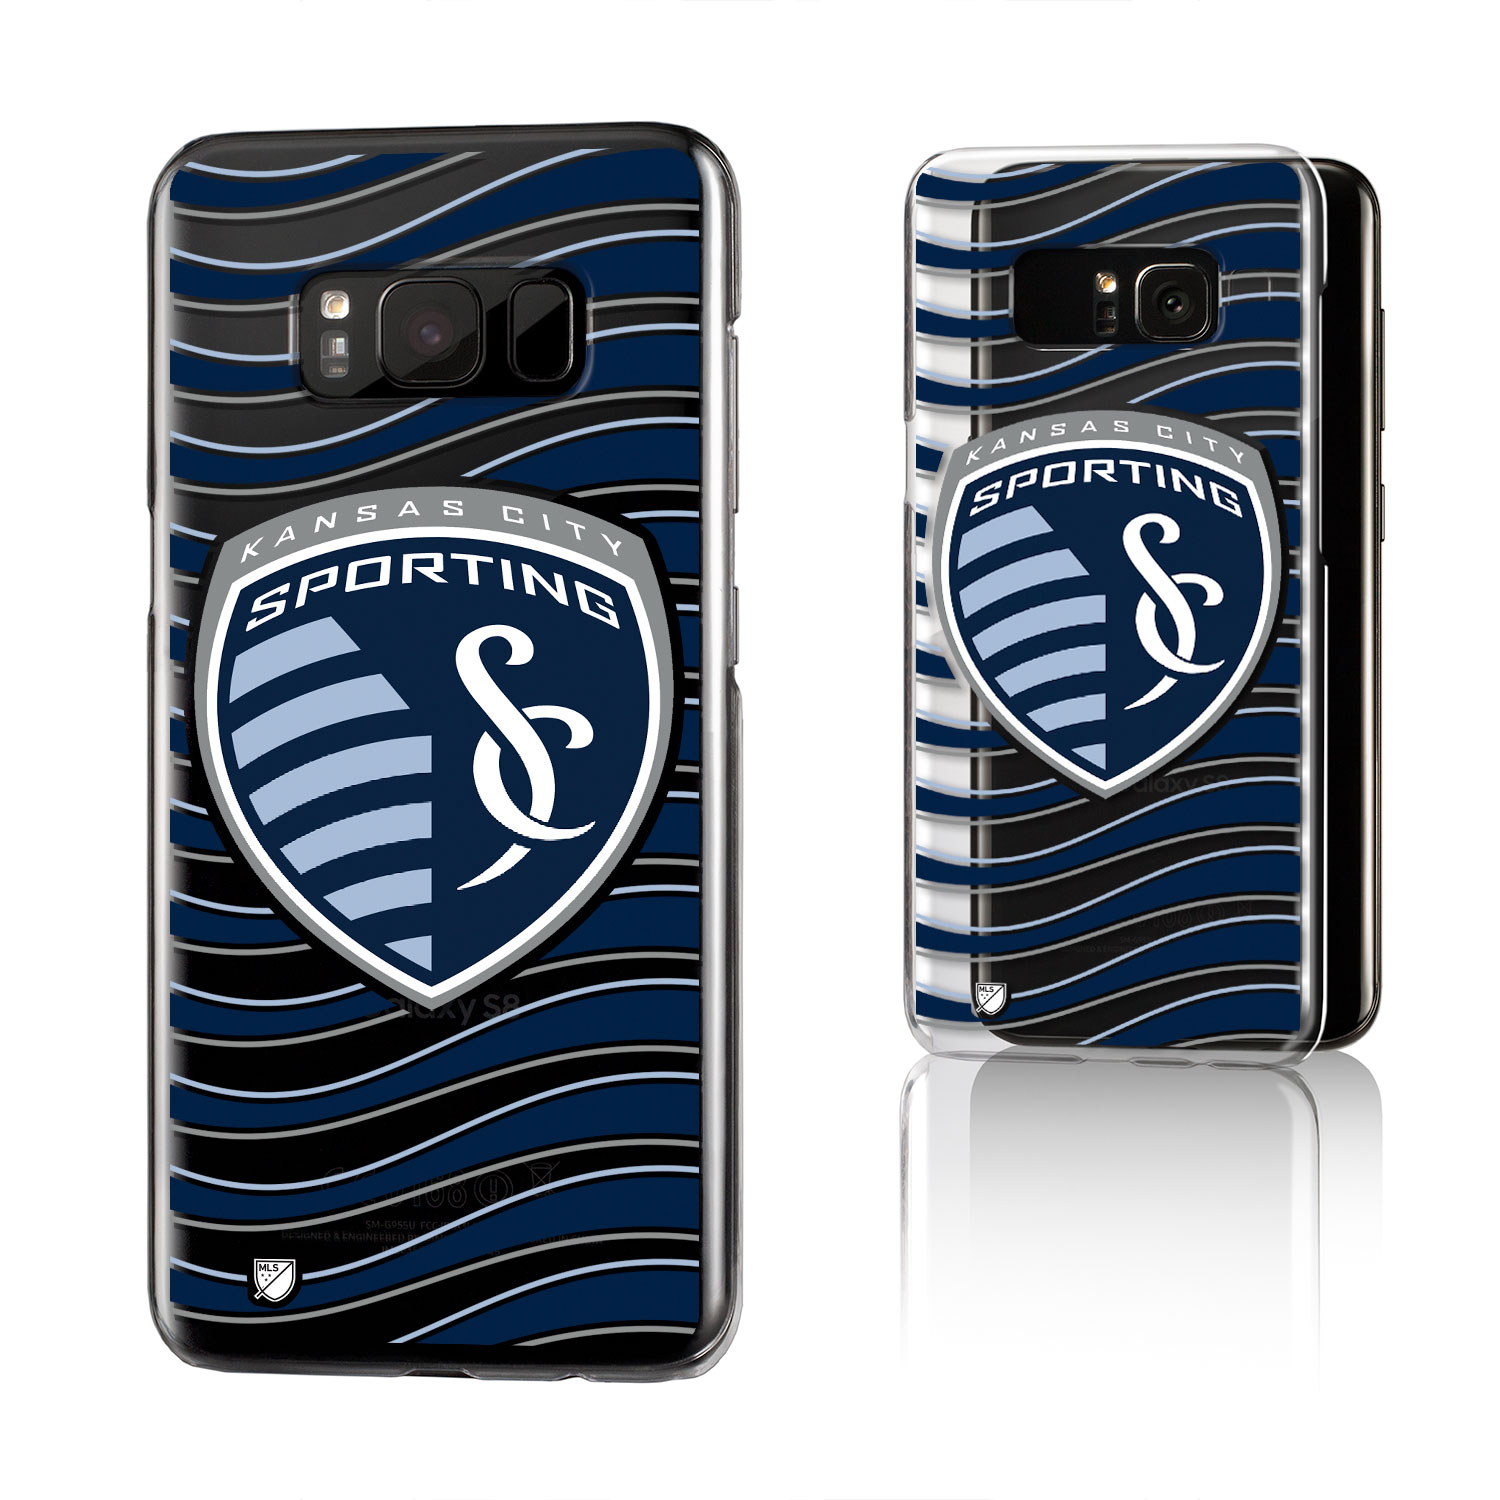 Sporting Kansas City SPORTING Wave Clear Case for Galaxy S8